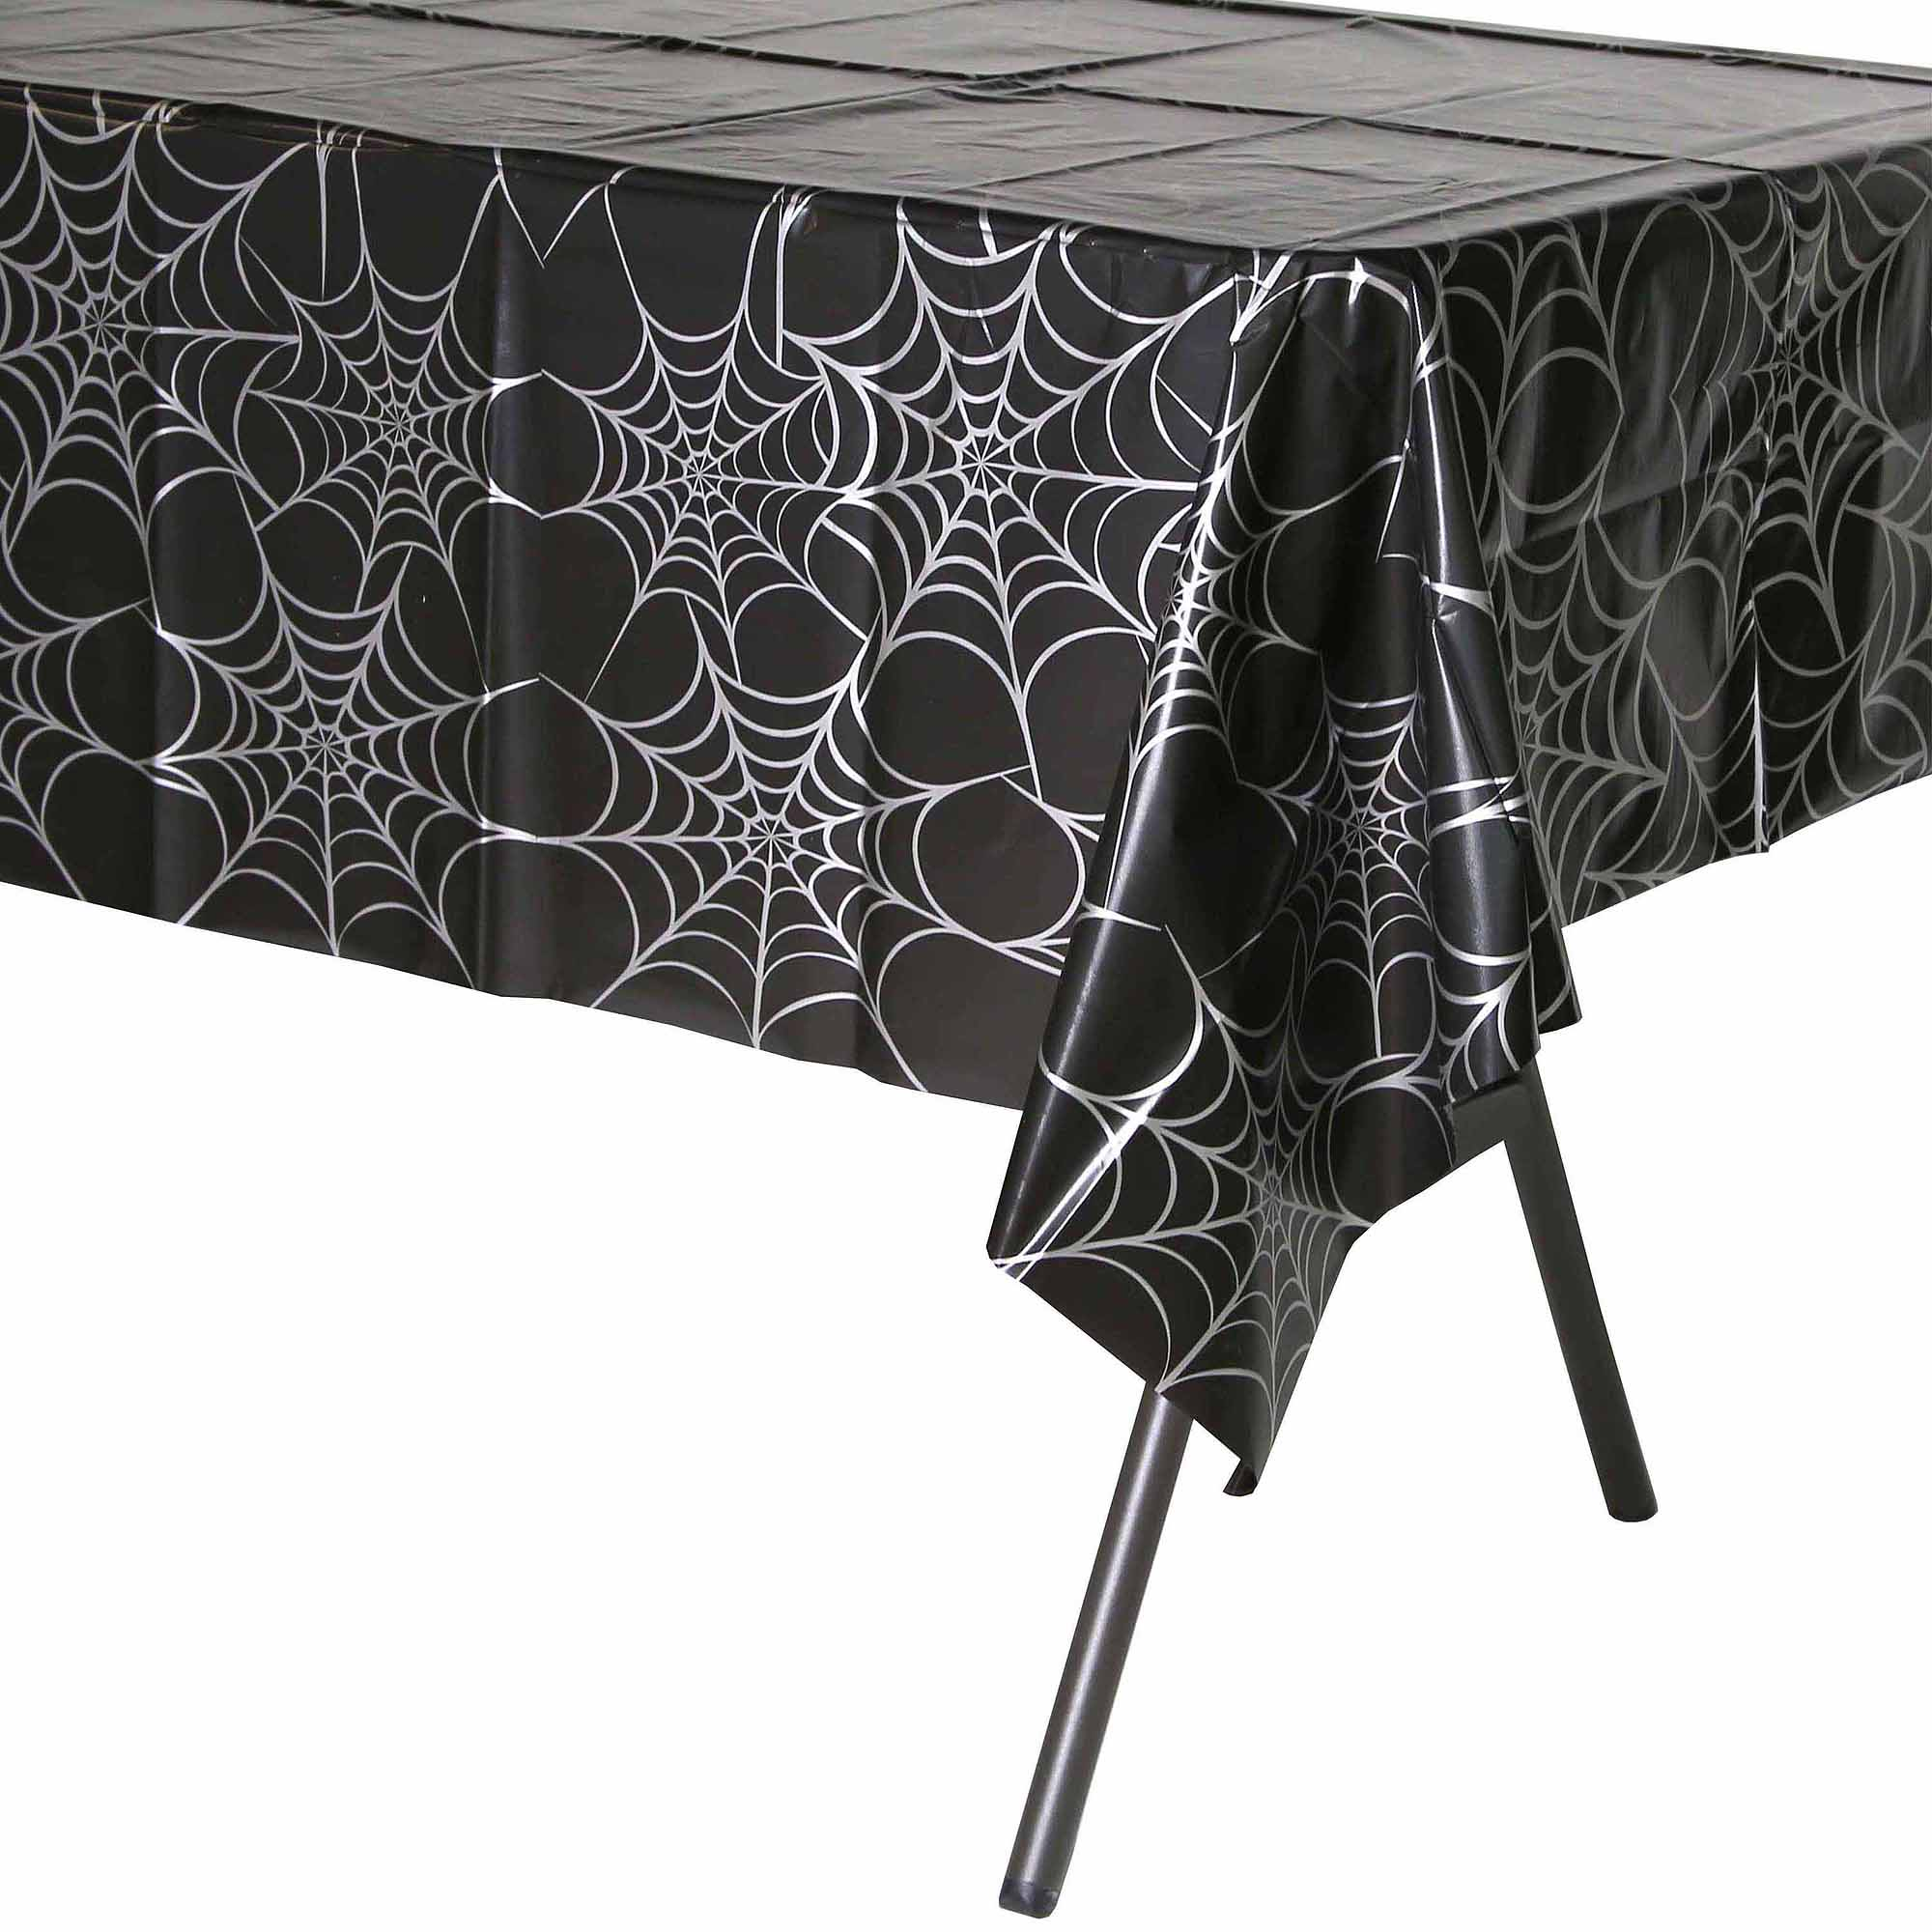 Nice Spider Web Table Cover